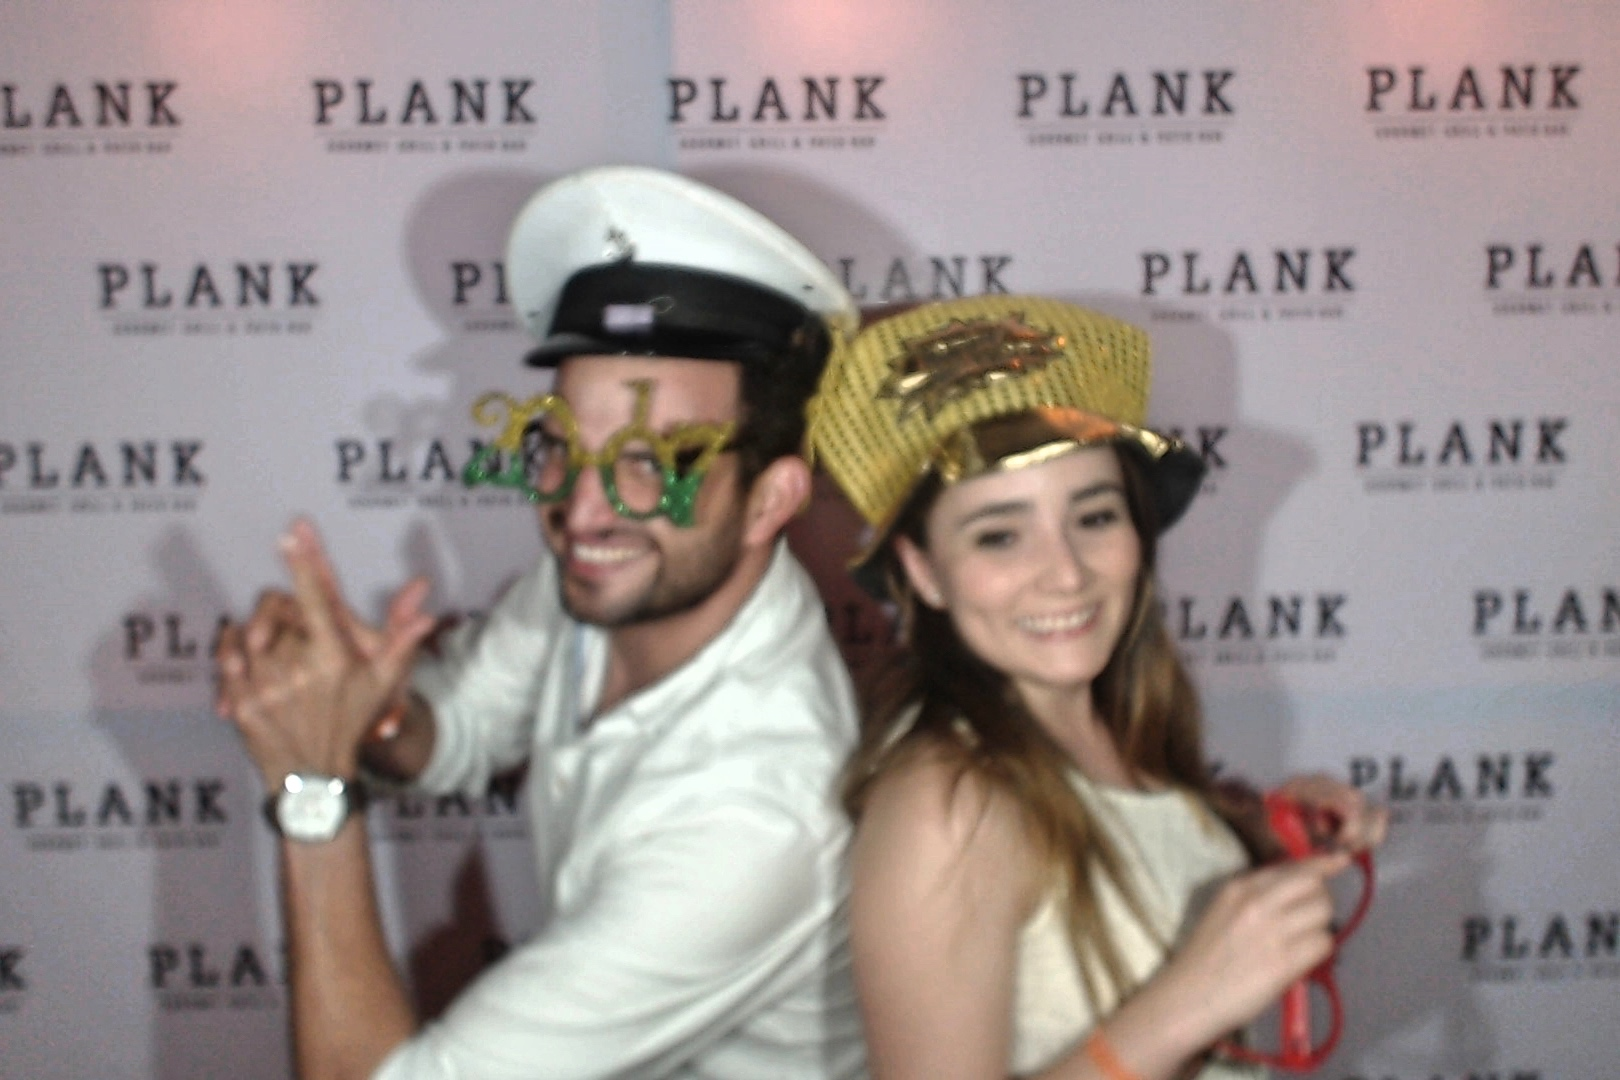 PlayadelCarmenphotobooth0015